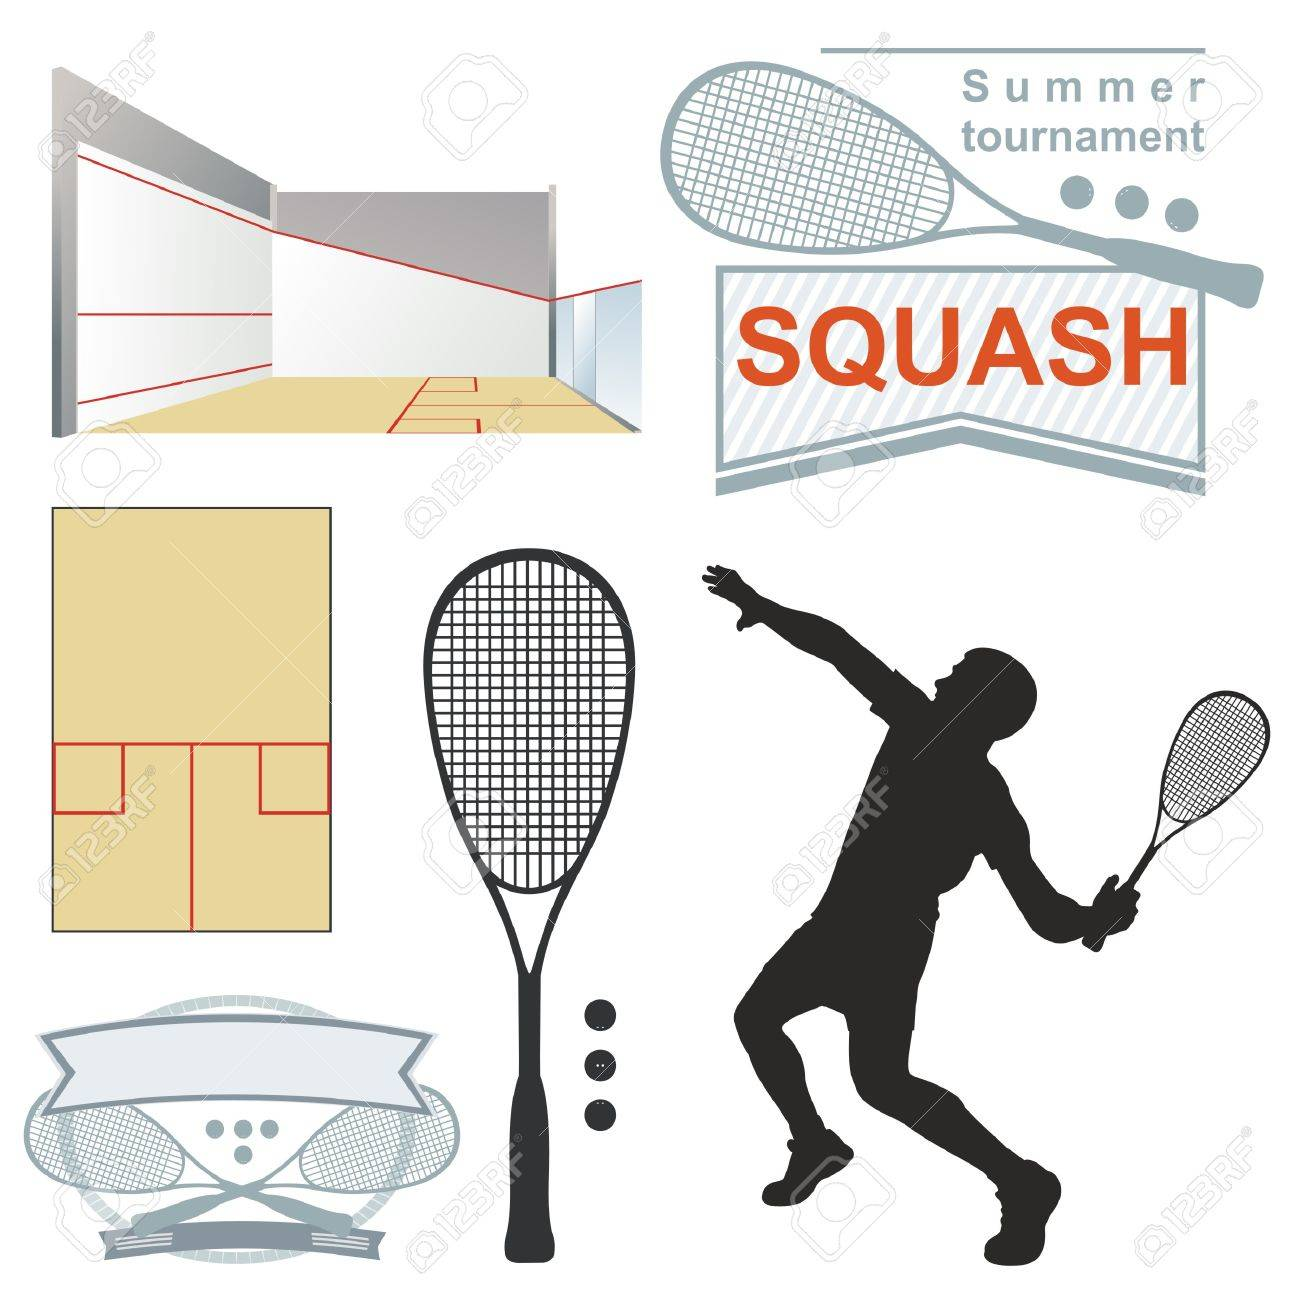 Squash , emblems, silhouette. on white background - 56220471